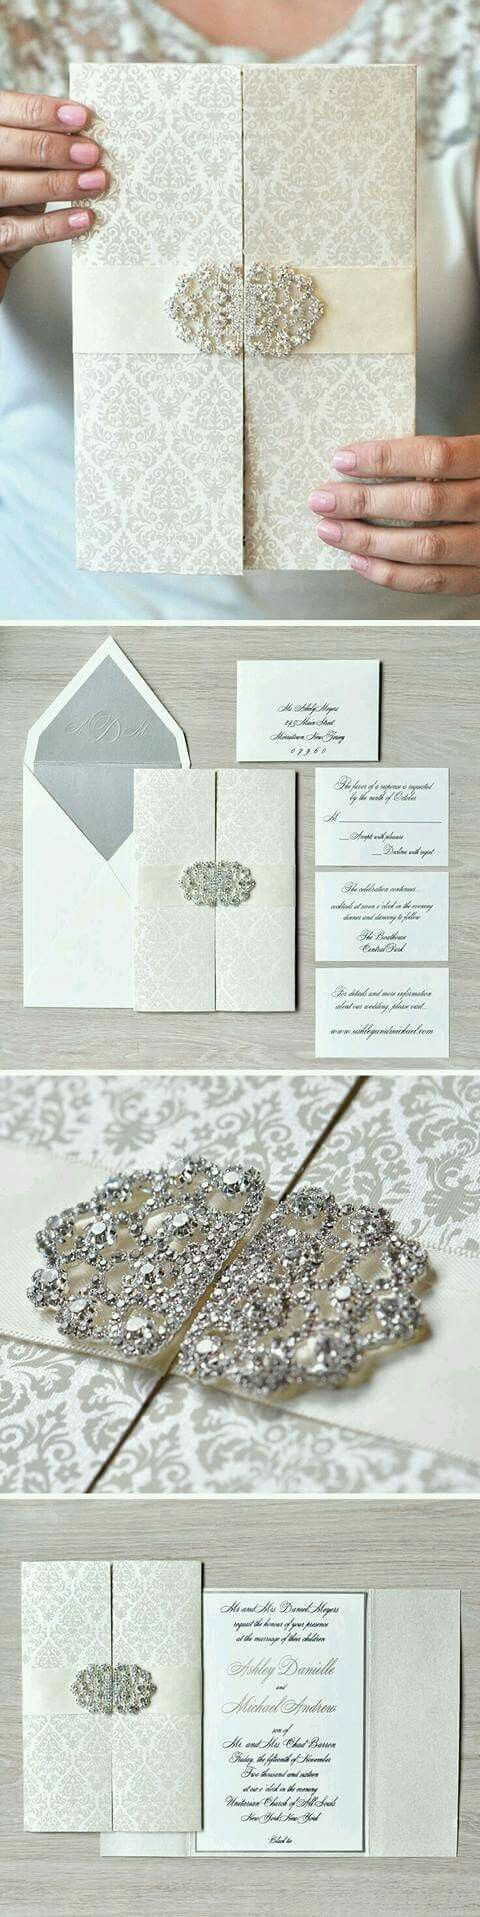 15 Best Invitations Images On Pinterest Card Wedding Wedding